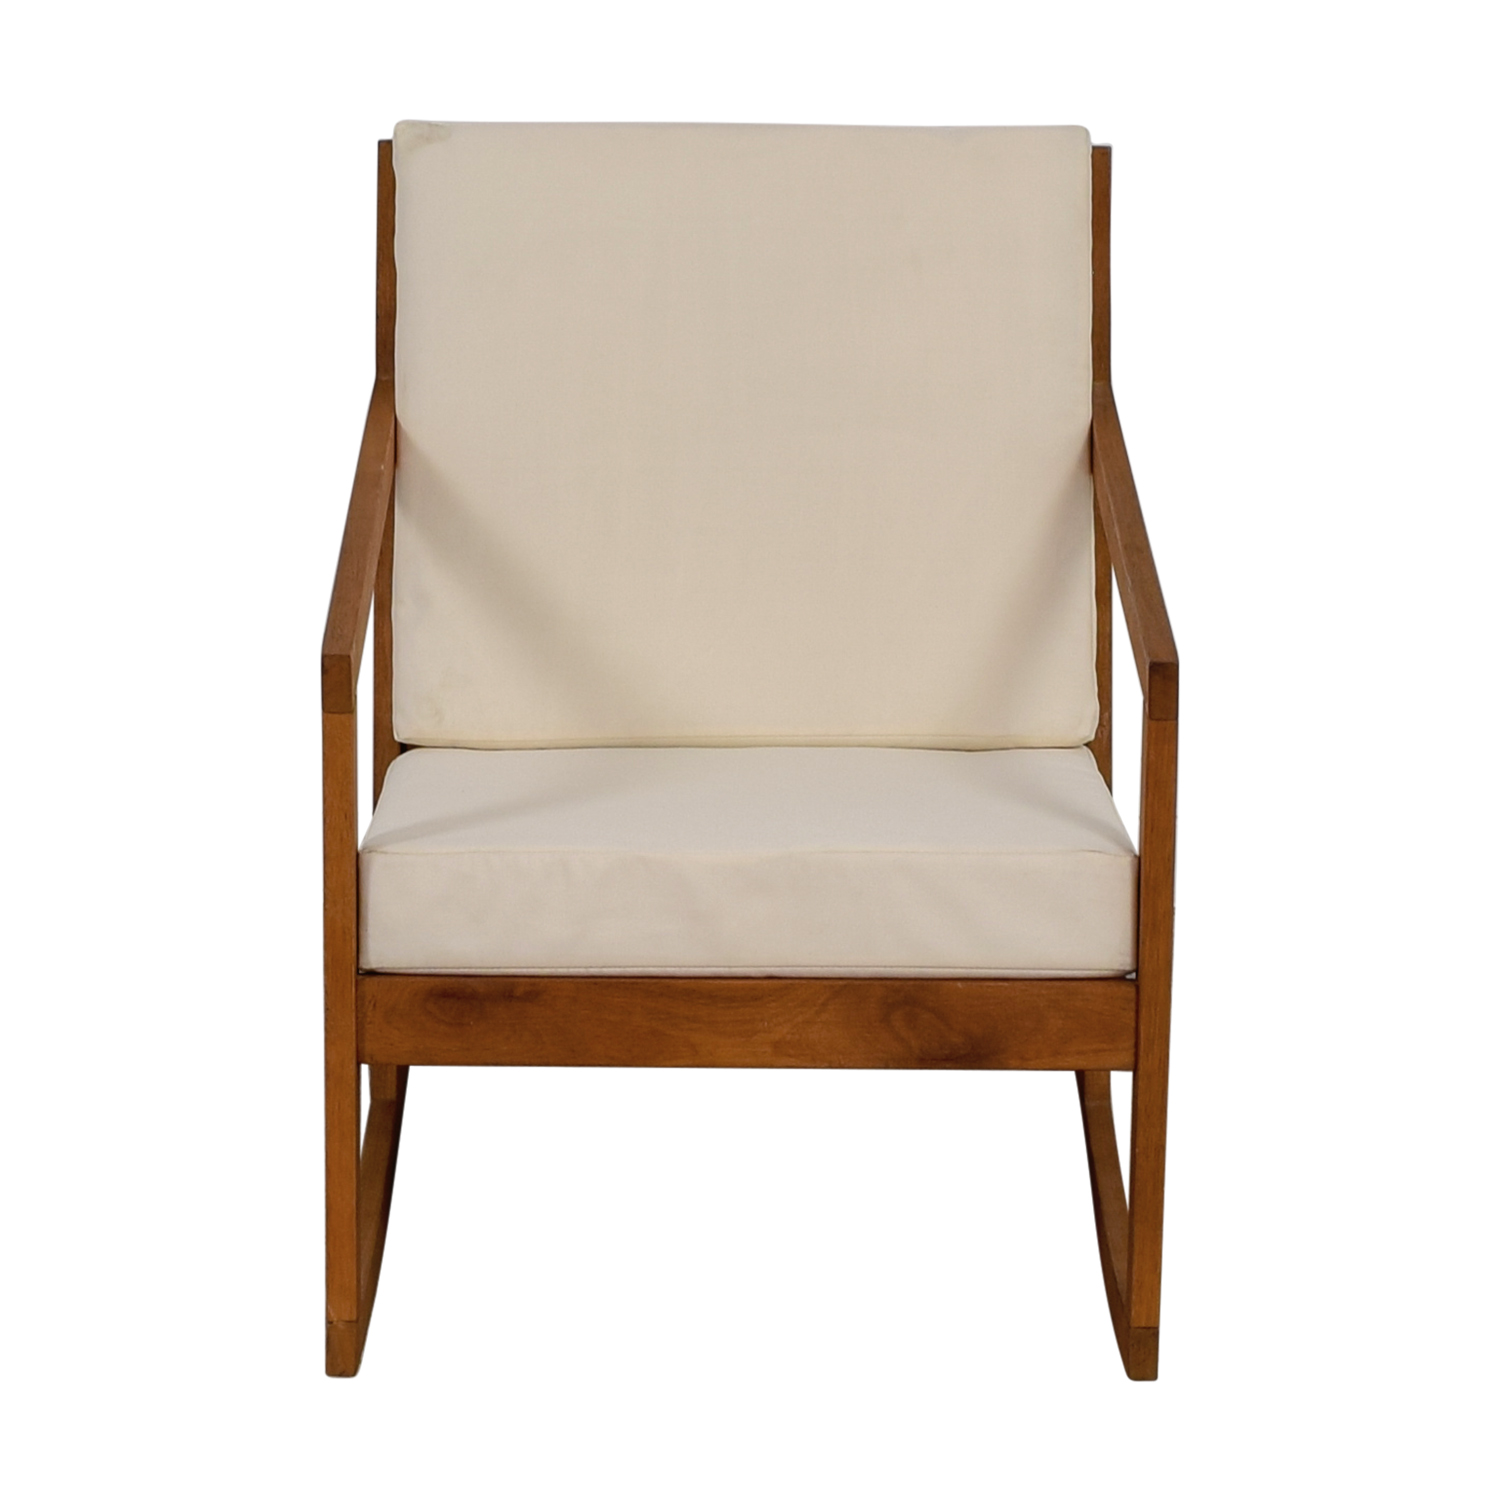 ... Safavieh Safavieh White Upholstered Wood Rocking Chair For Sale ...